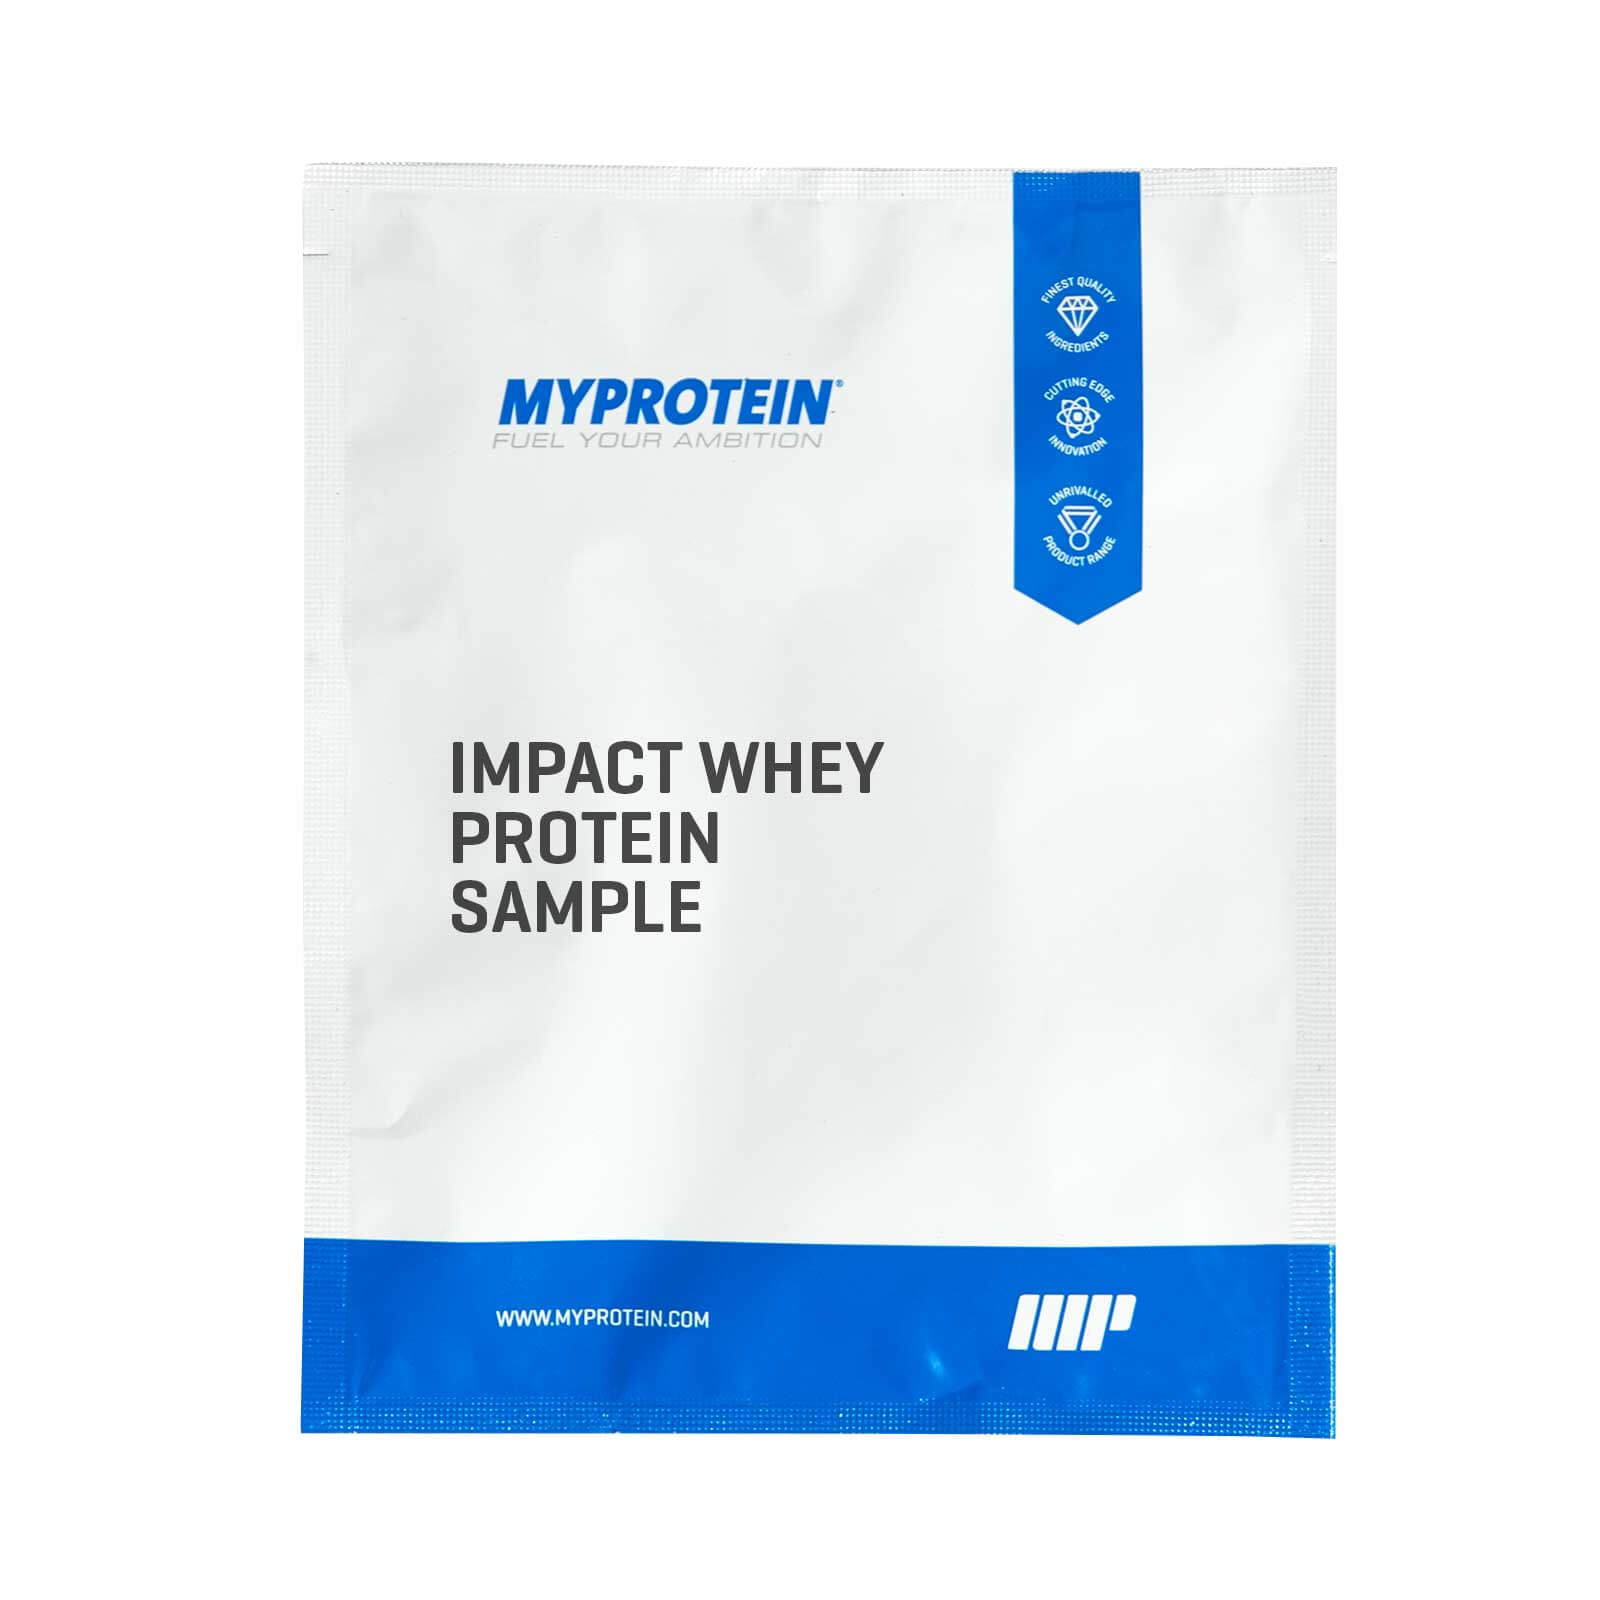 Impact Whey Protein (Sample), Strawberry Jam Roly Poly, 25g